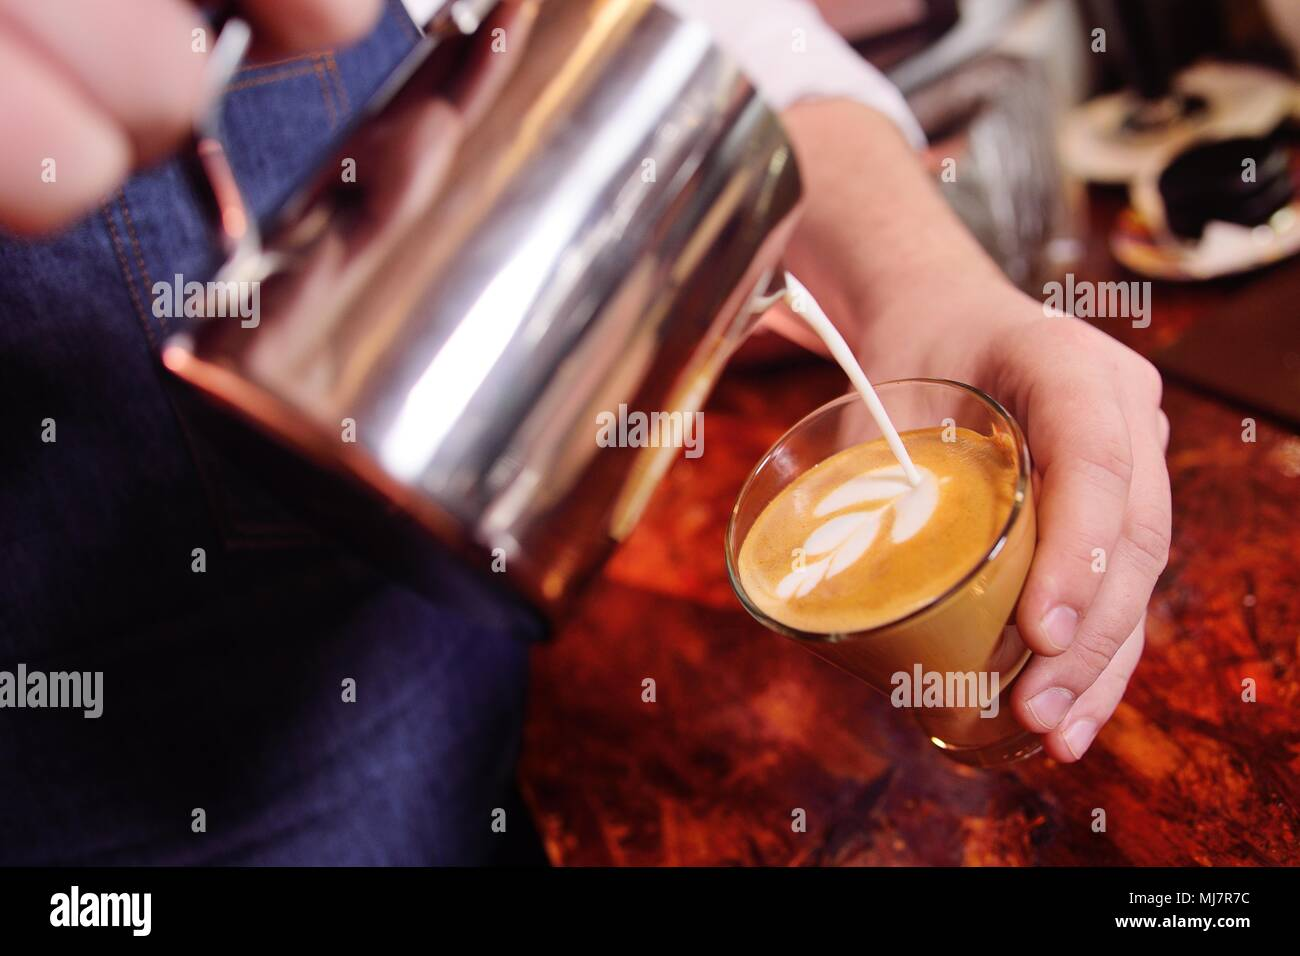 coffee barman prepares coffee with a pattern on the foam or latte-art - Stock Image